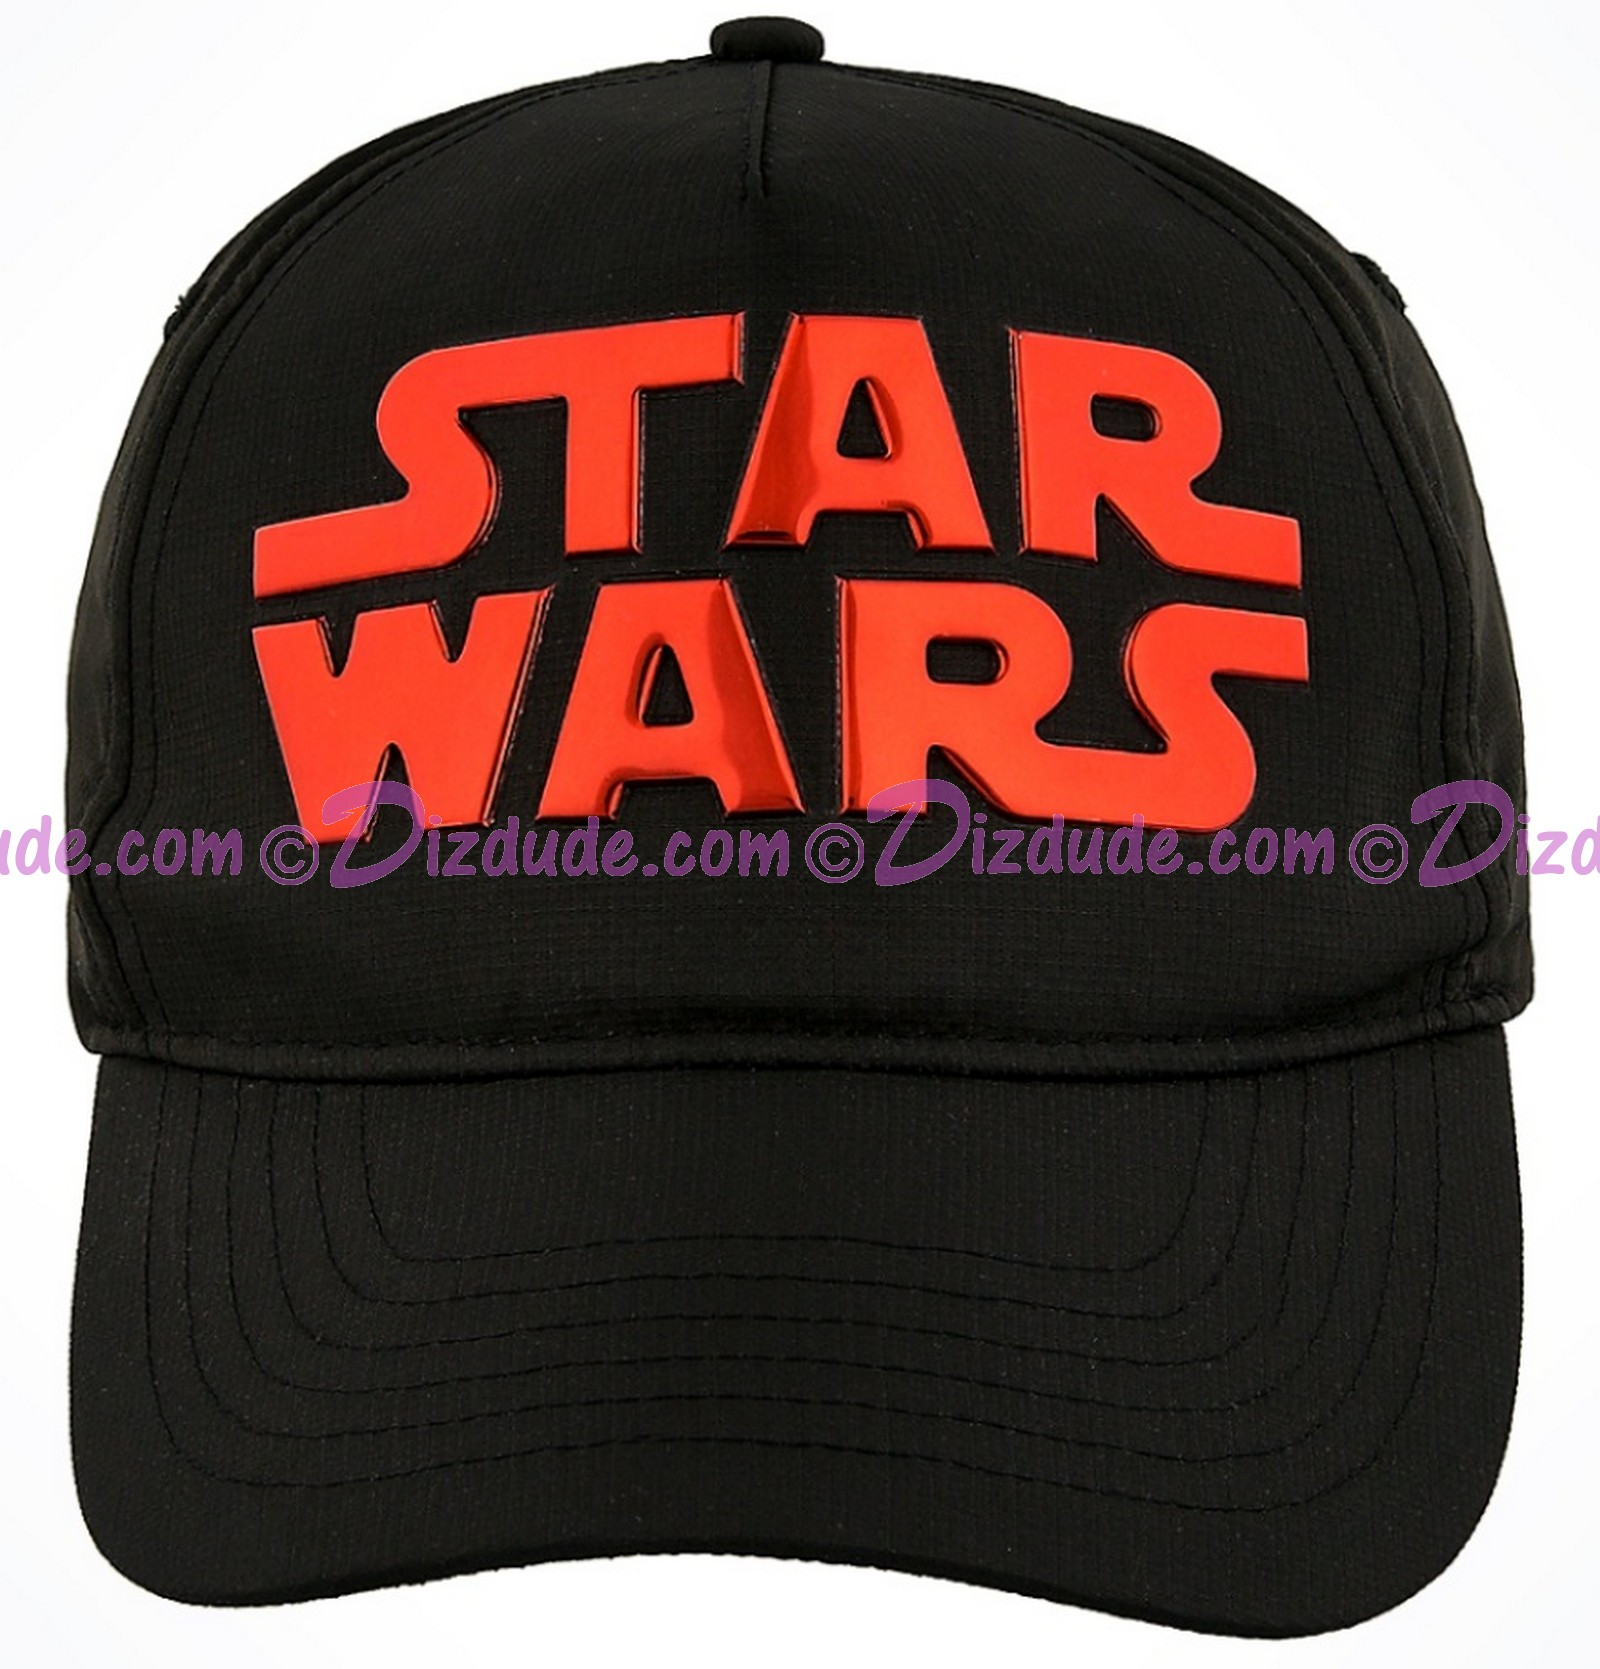 Disney Star Wars Title Logo Black & Red Adjustable Baseball Hat © Dizdude.com